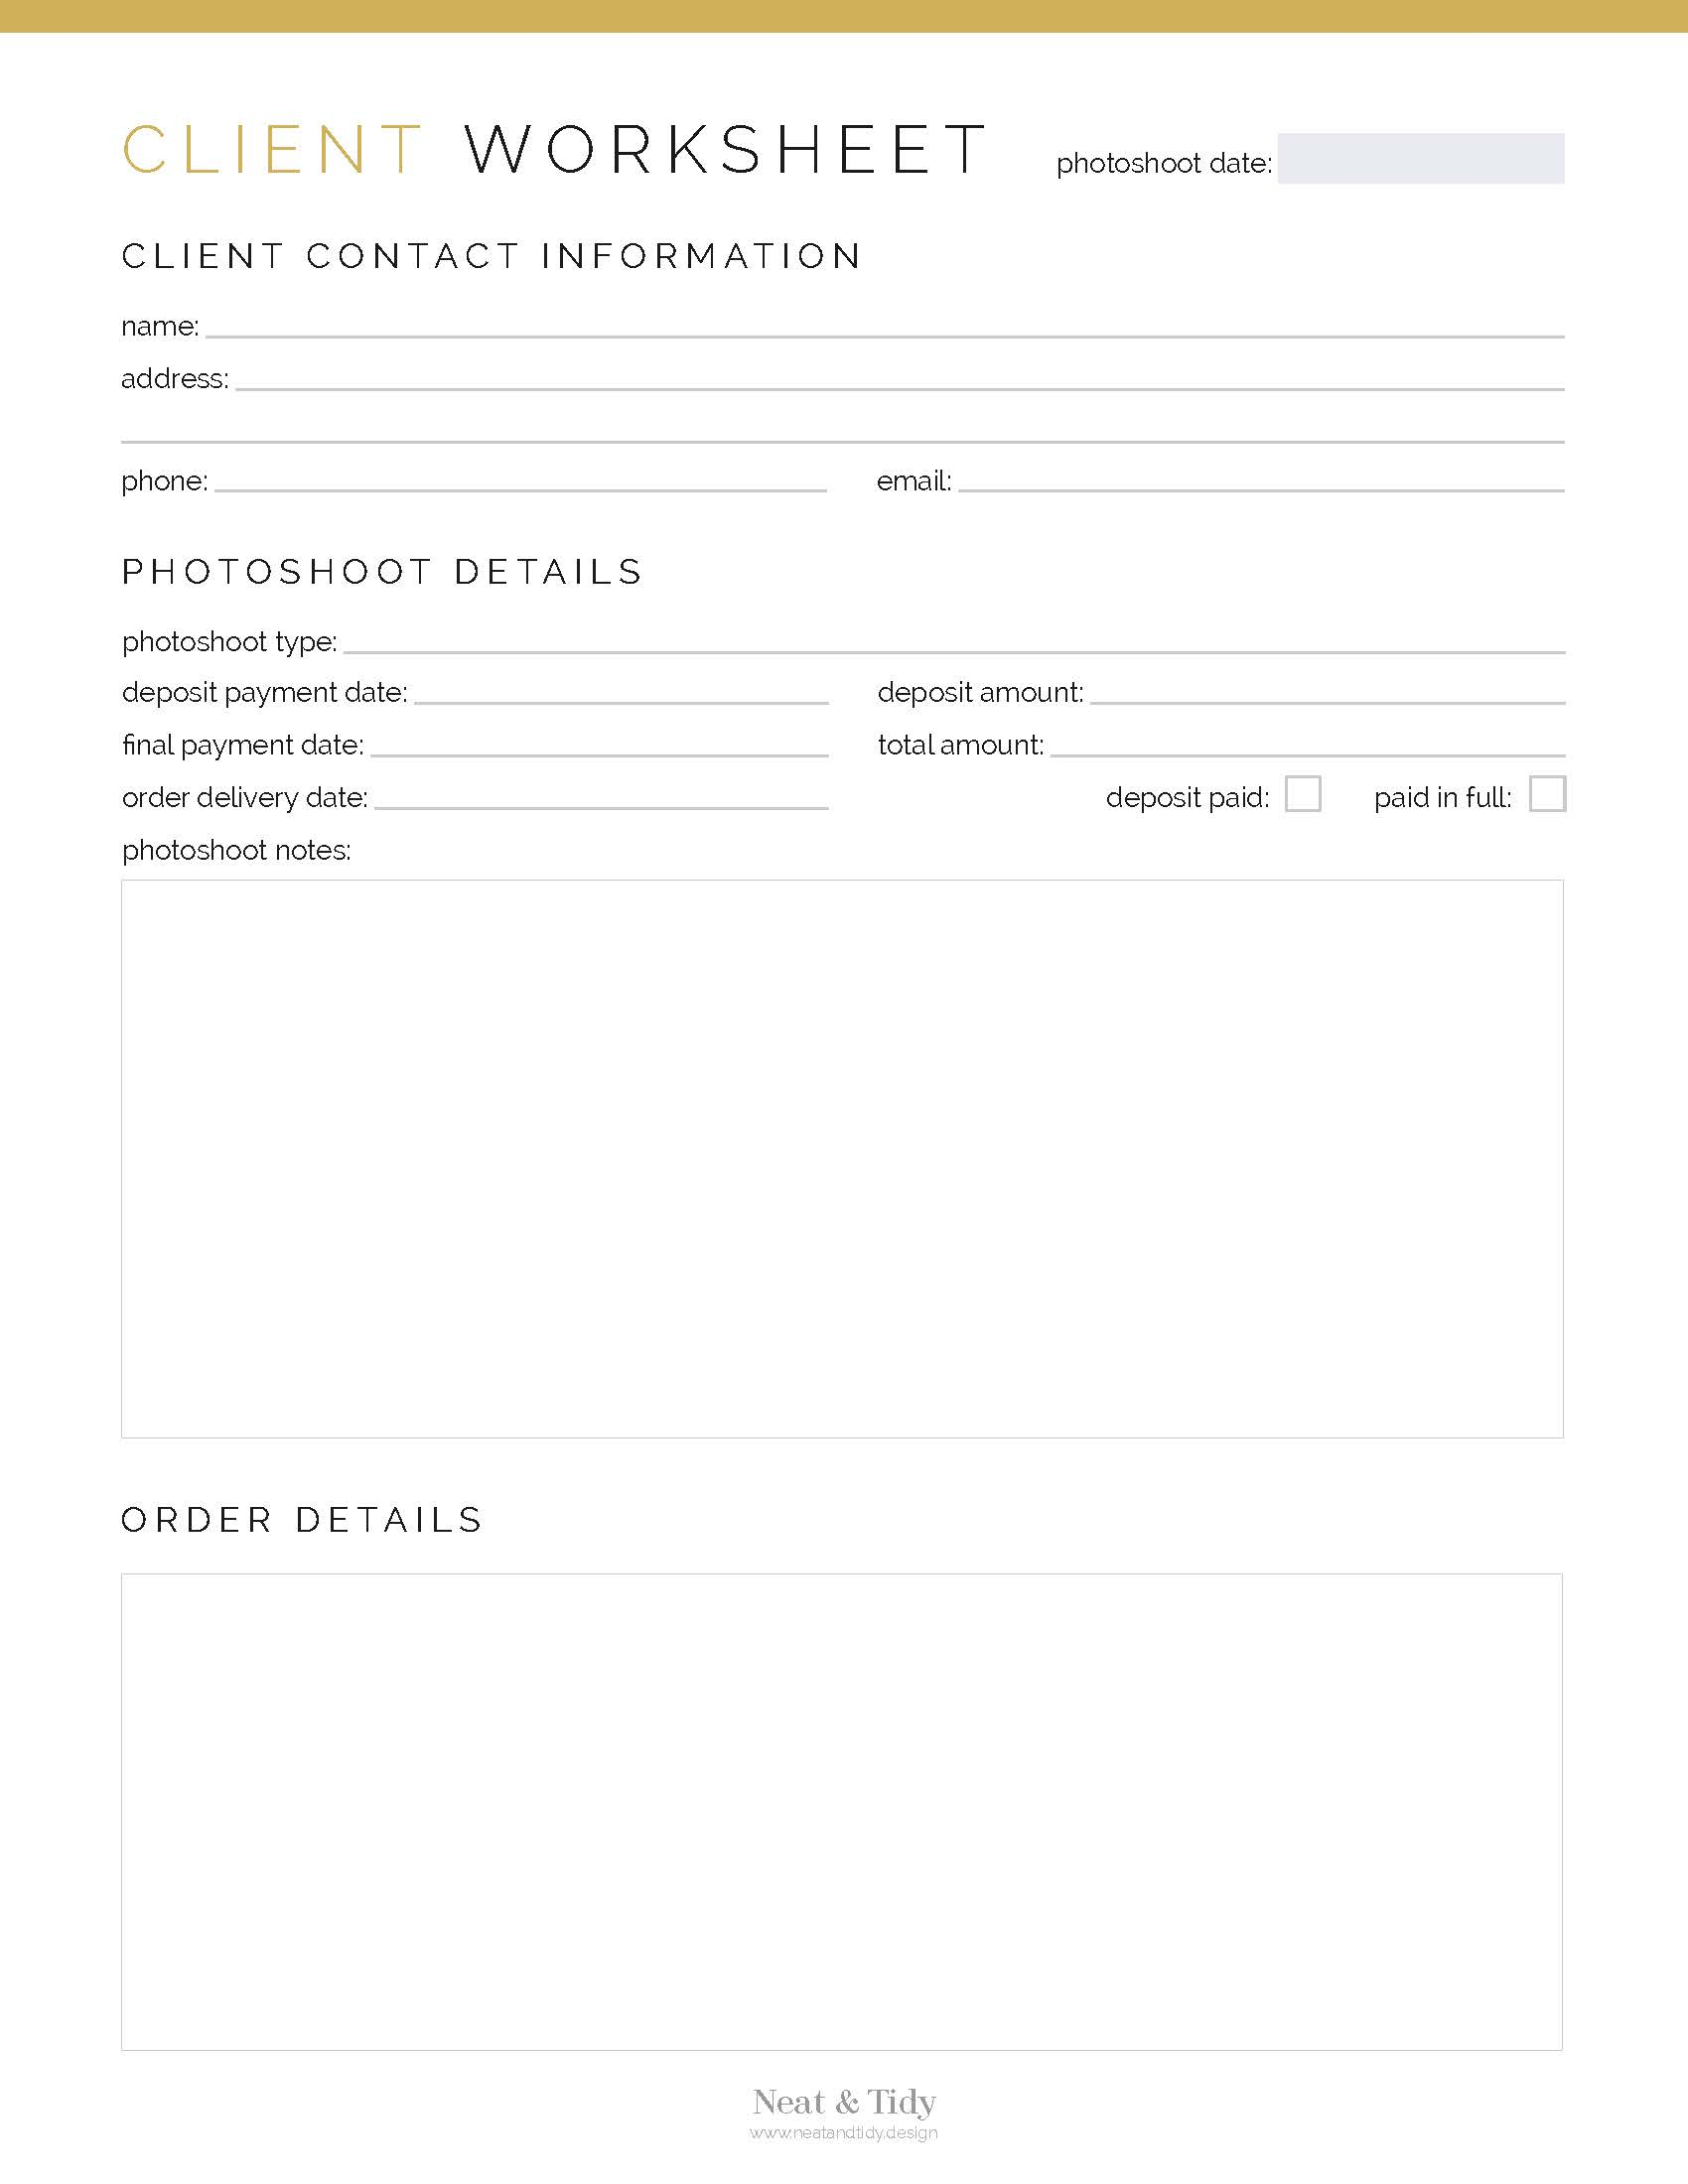 Client Worksheet Photography